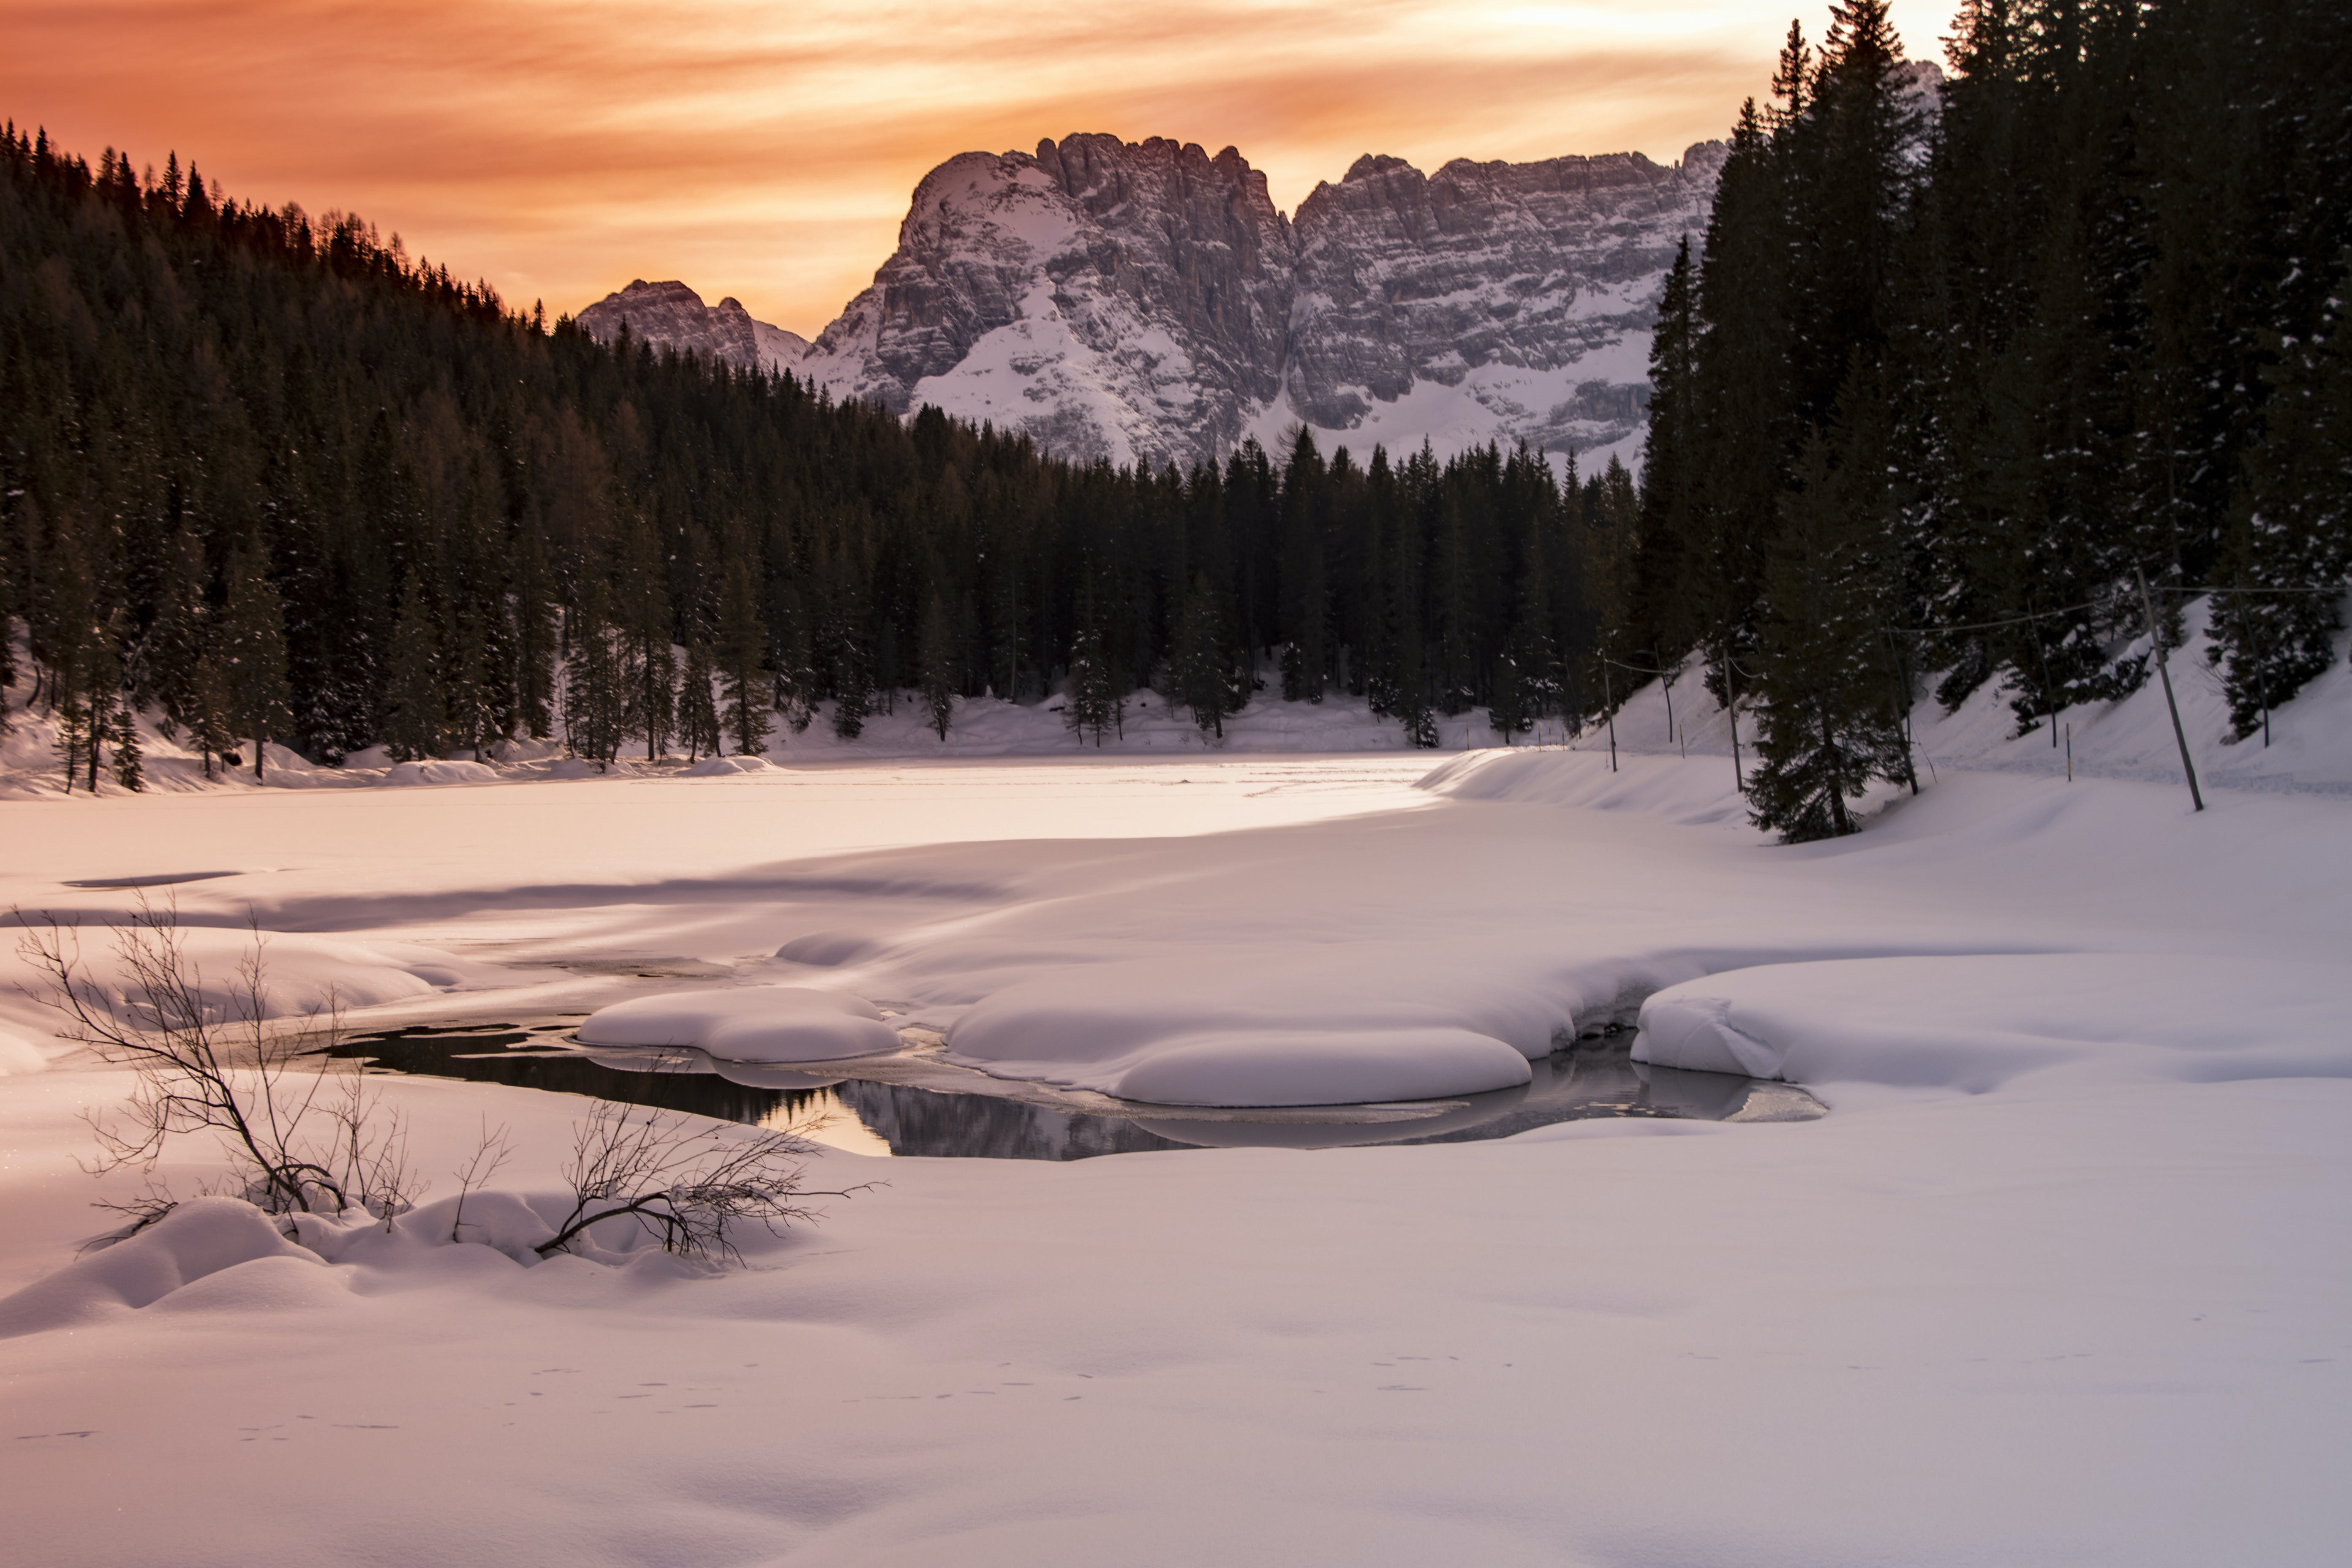 Snow Coated Land Across Pine Trees during Sunset